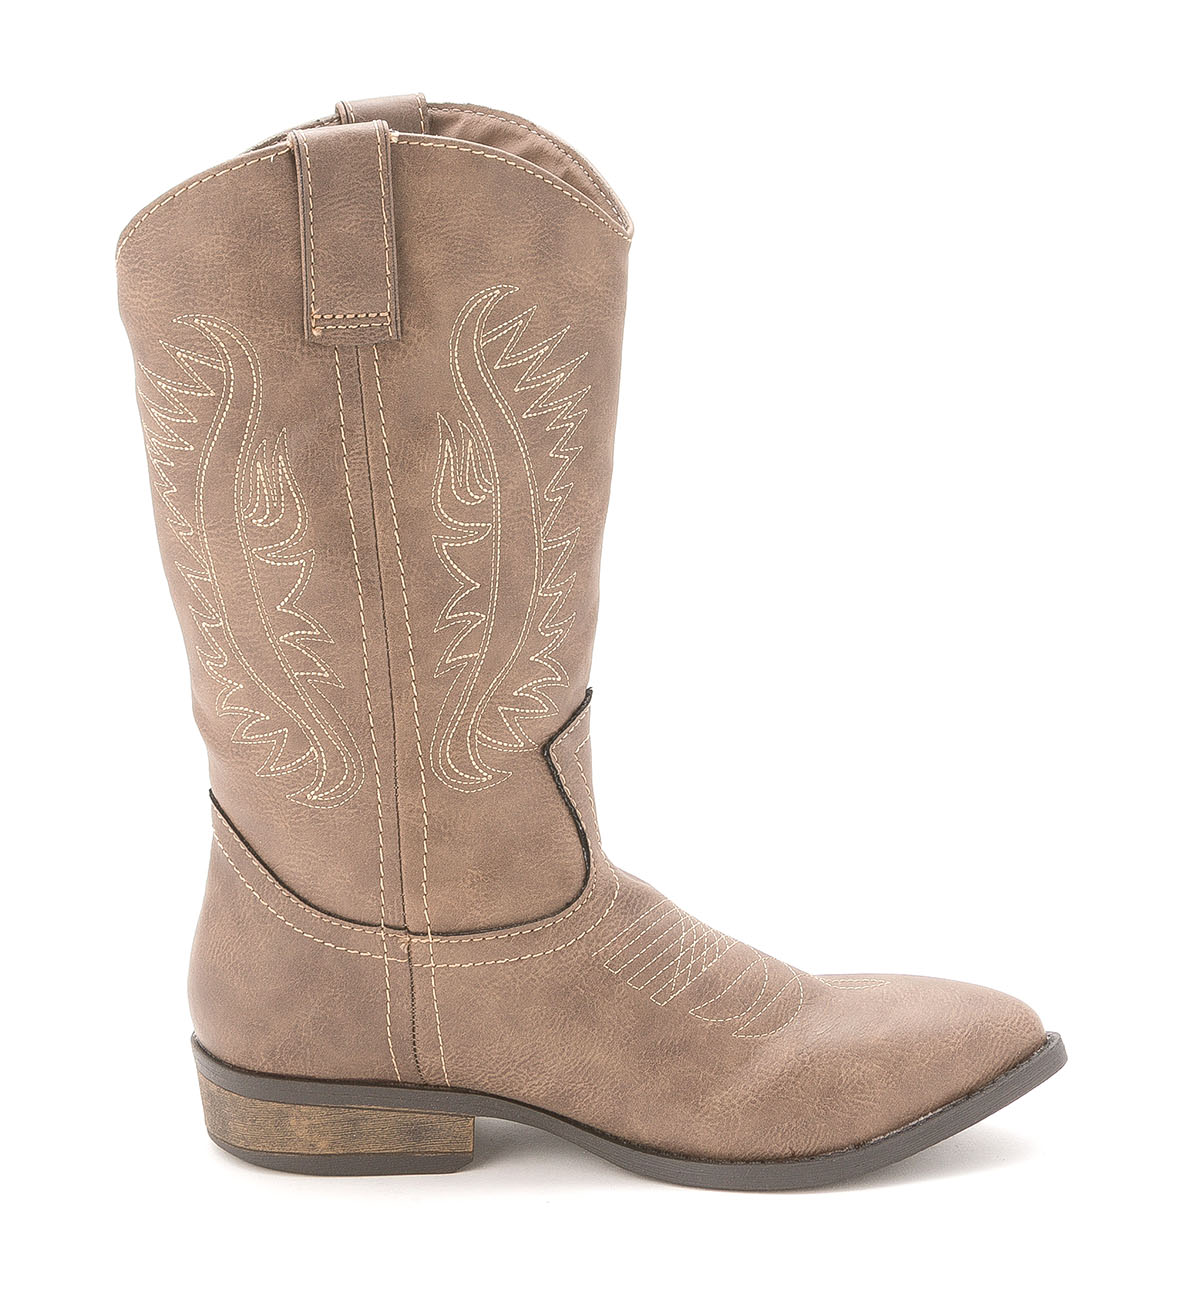 Find great deals on eBay for womens pointed boots. Shop with confidence.